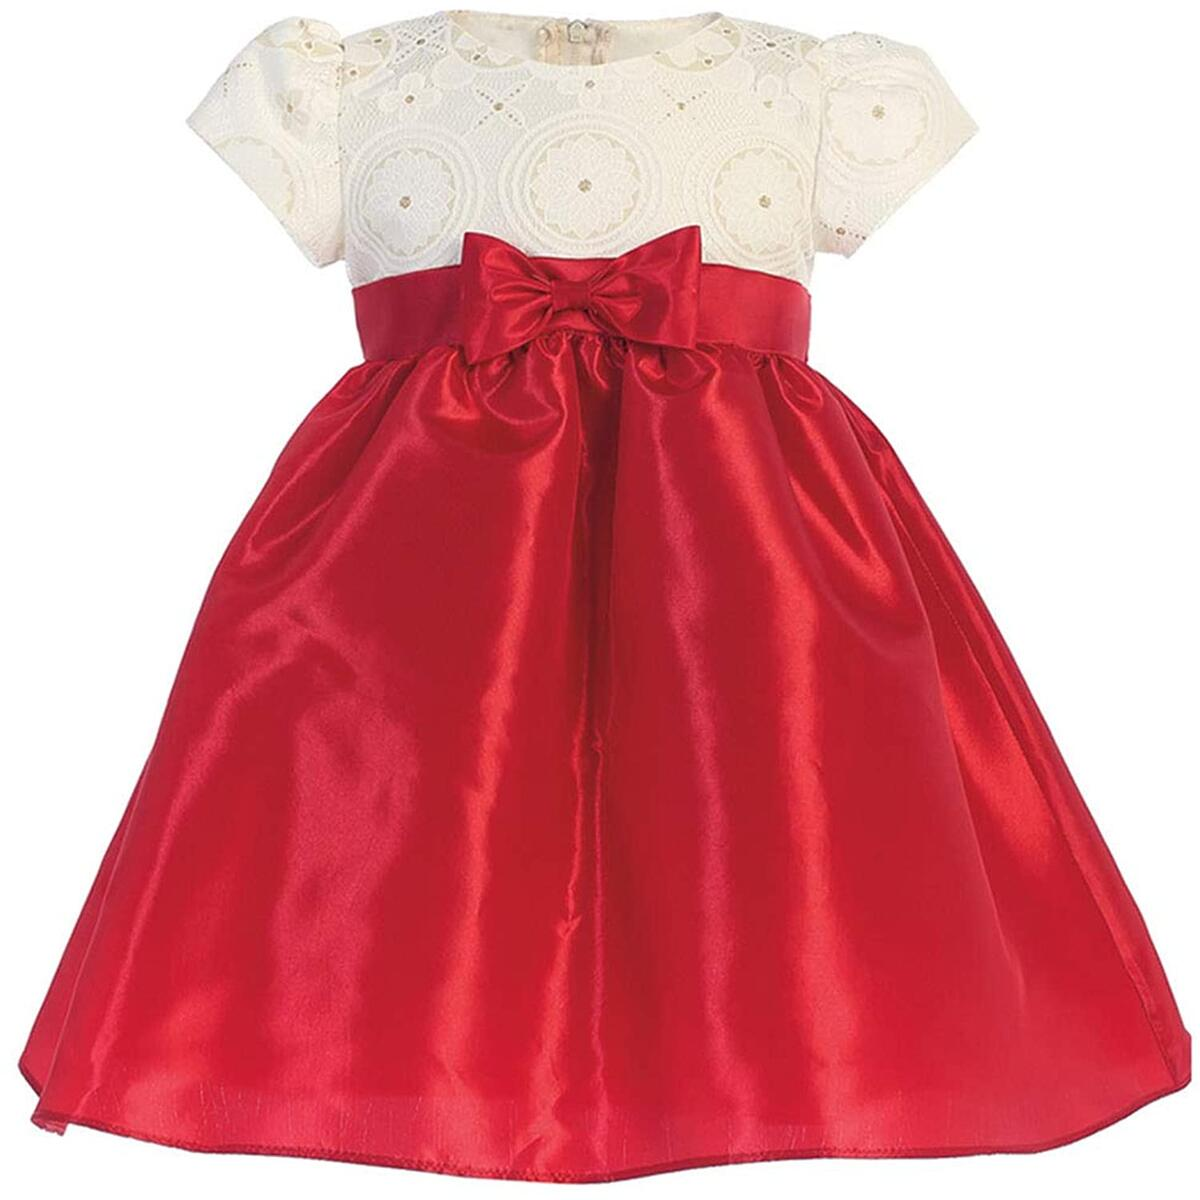 Pink Princess Christmas Dresses for Girls - Baby Toddler Outfits - Made in USA